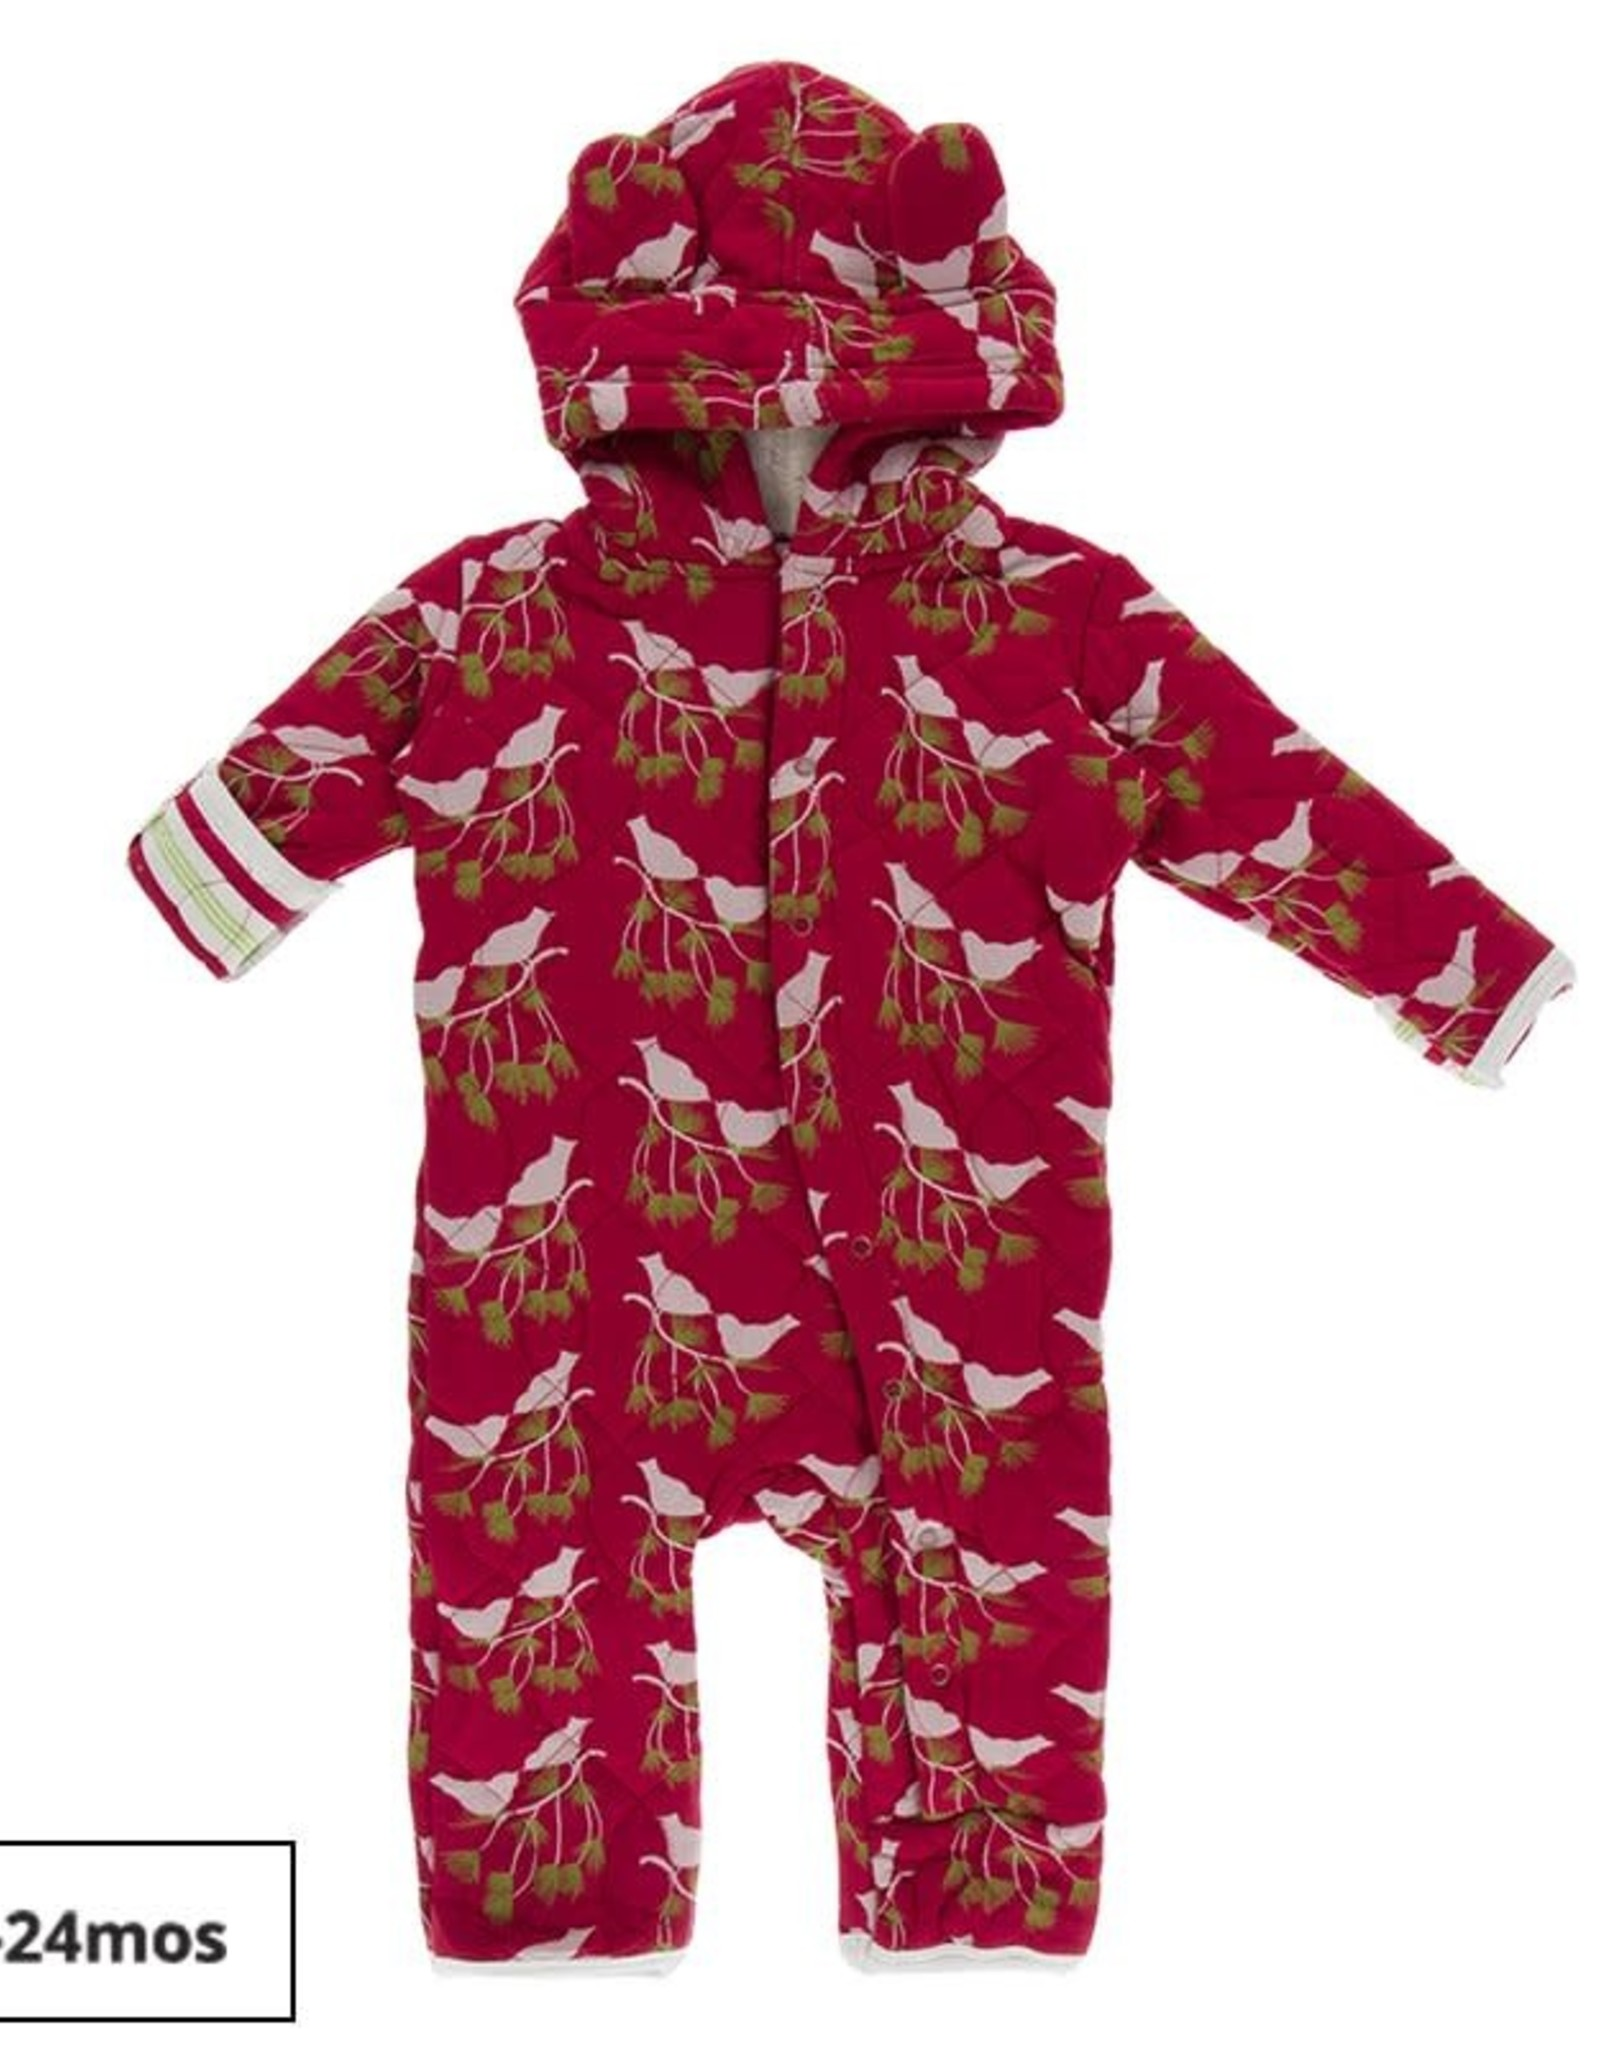 Kickee Pants Kickee Pants Holiday Print Quilted Hoodie Coverall W/ Ears